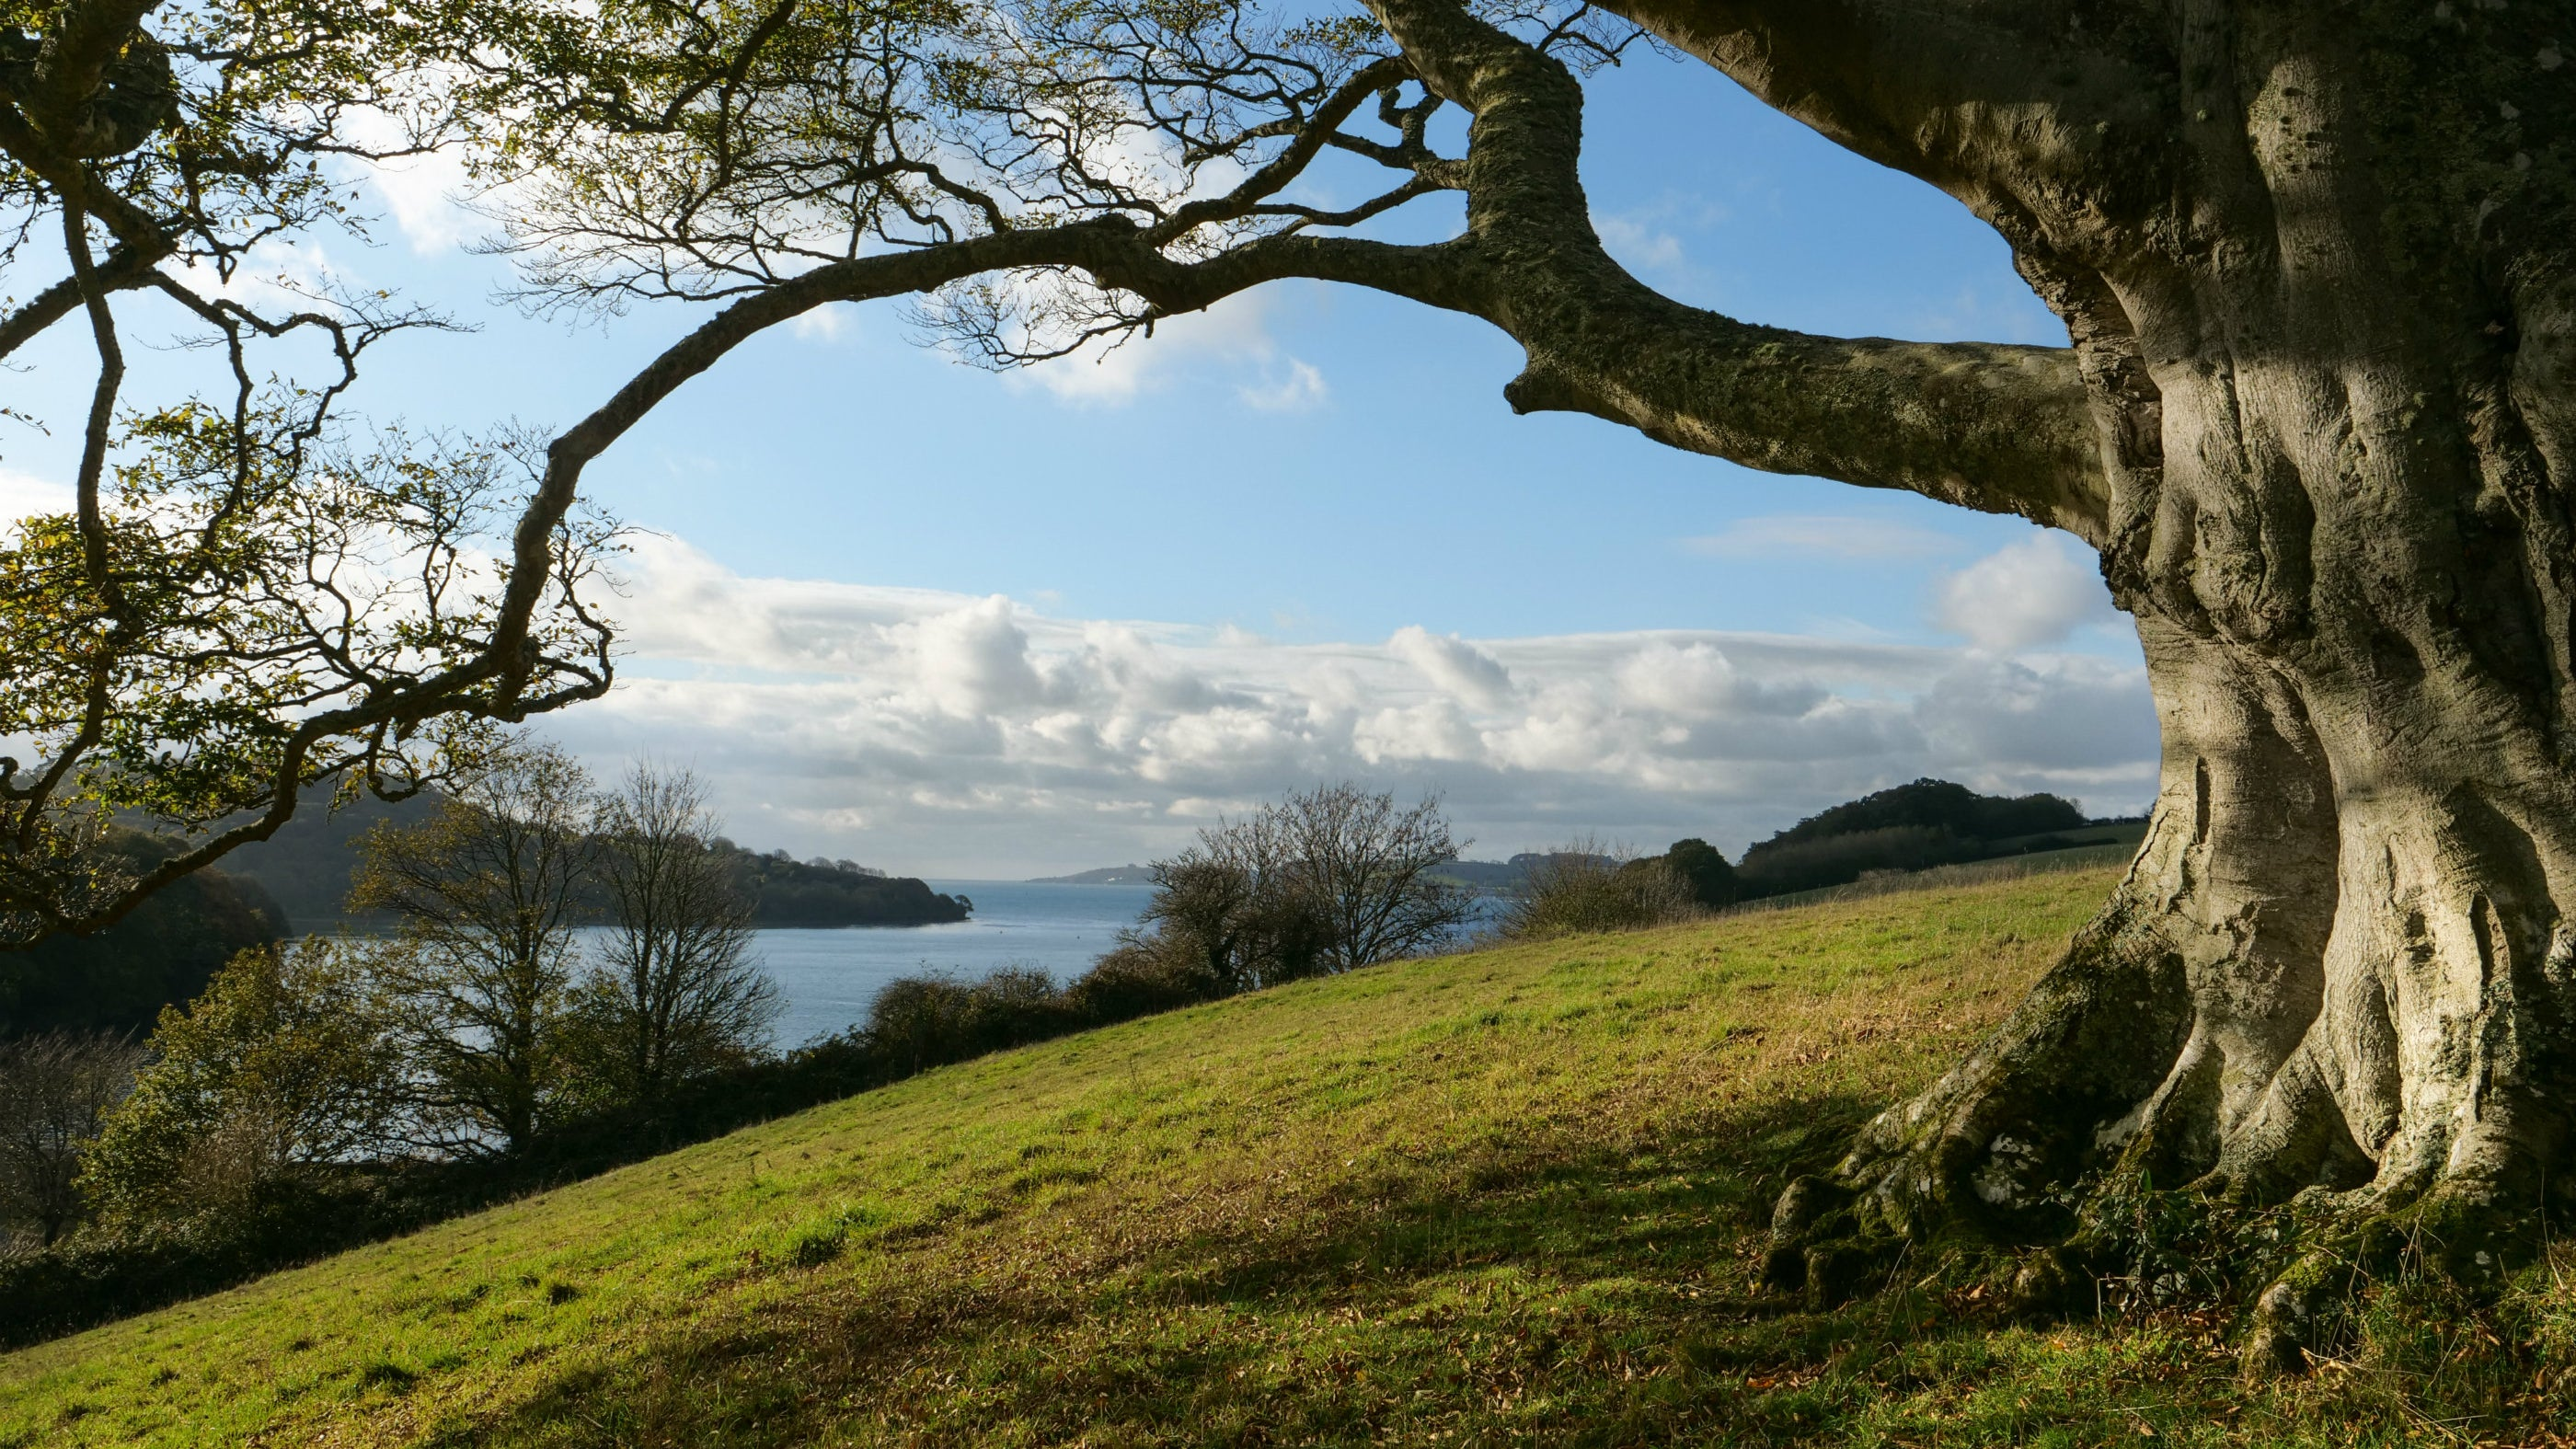 Views from the parkalnd at Trelissick, Cornwall